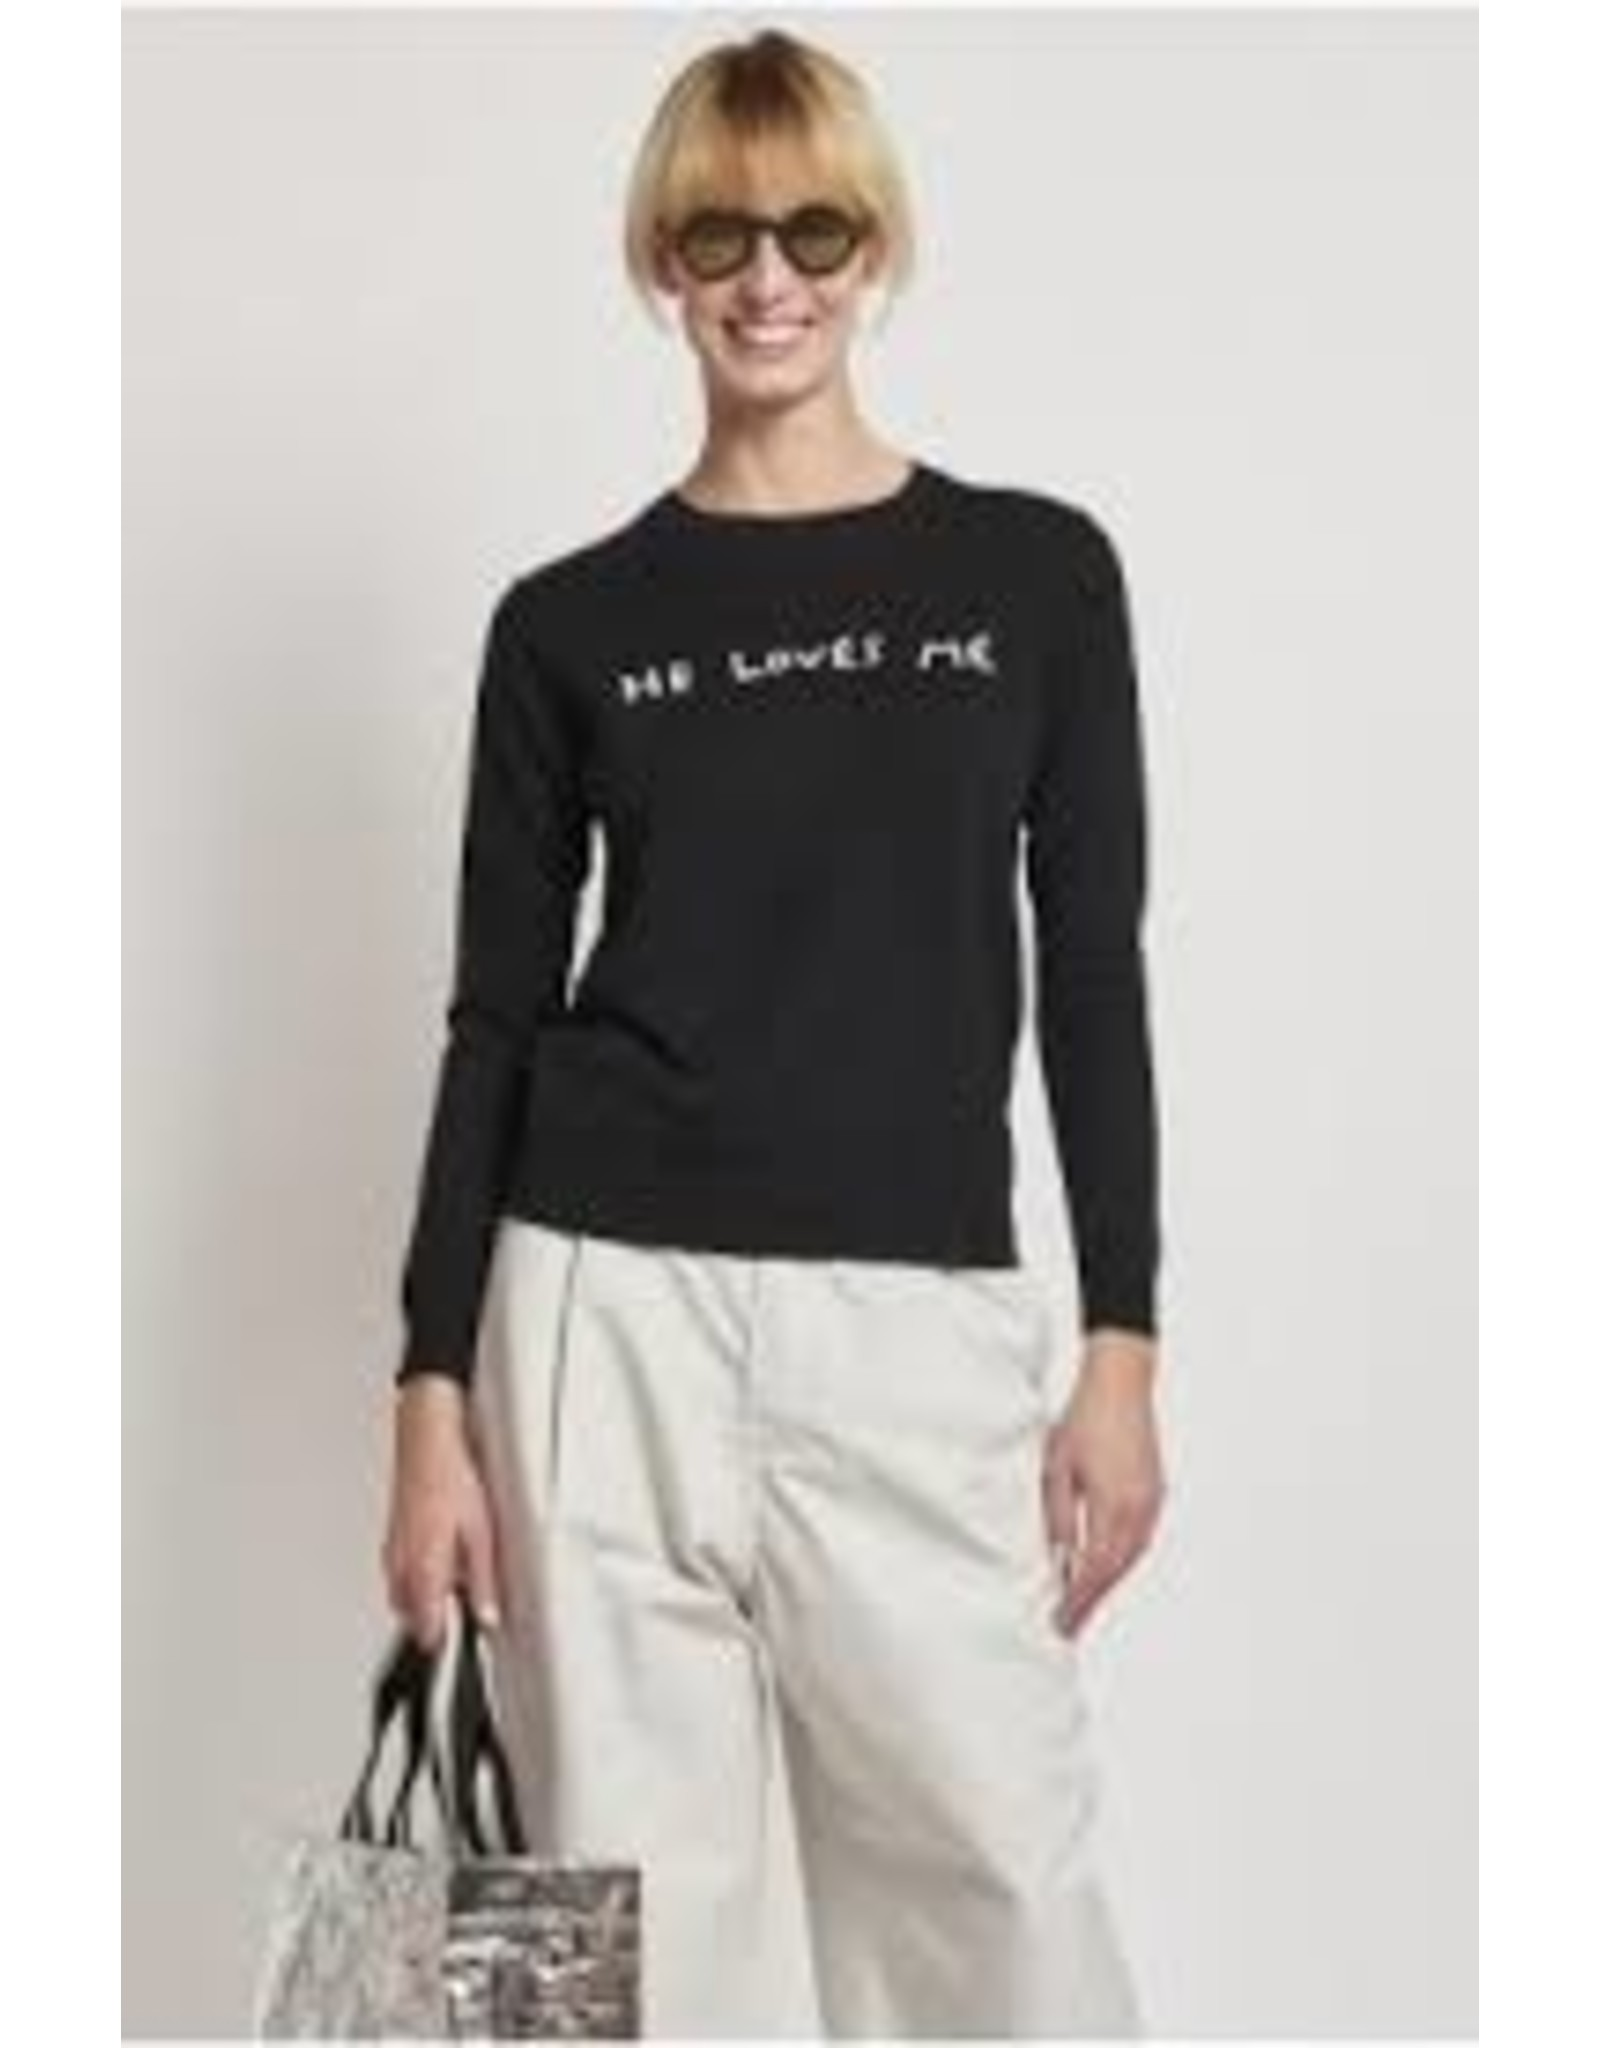 Chinti & Parker TN24 He Loves Me s/s